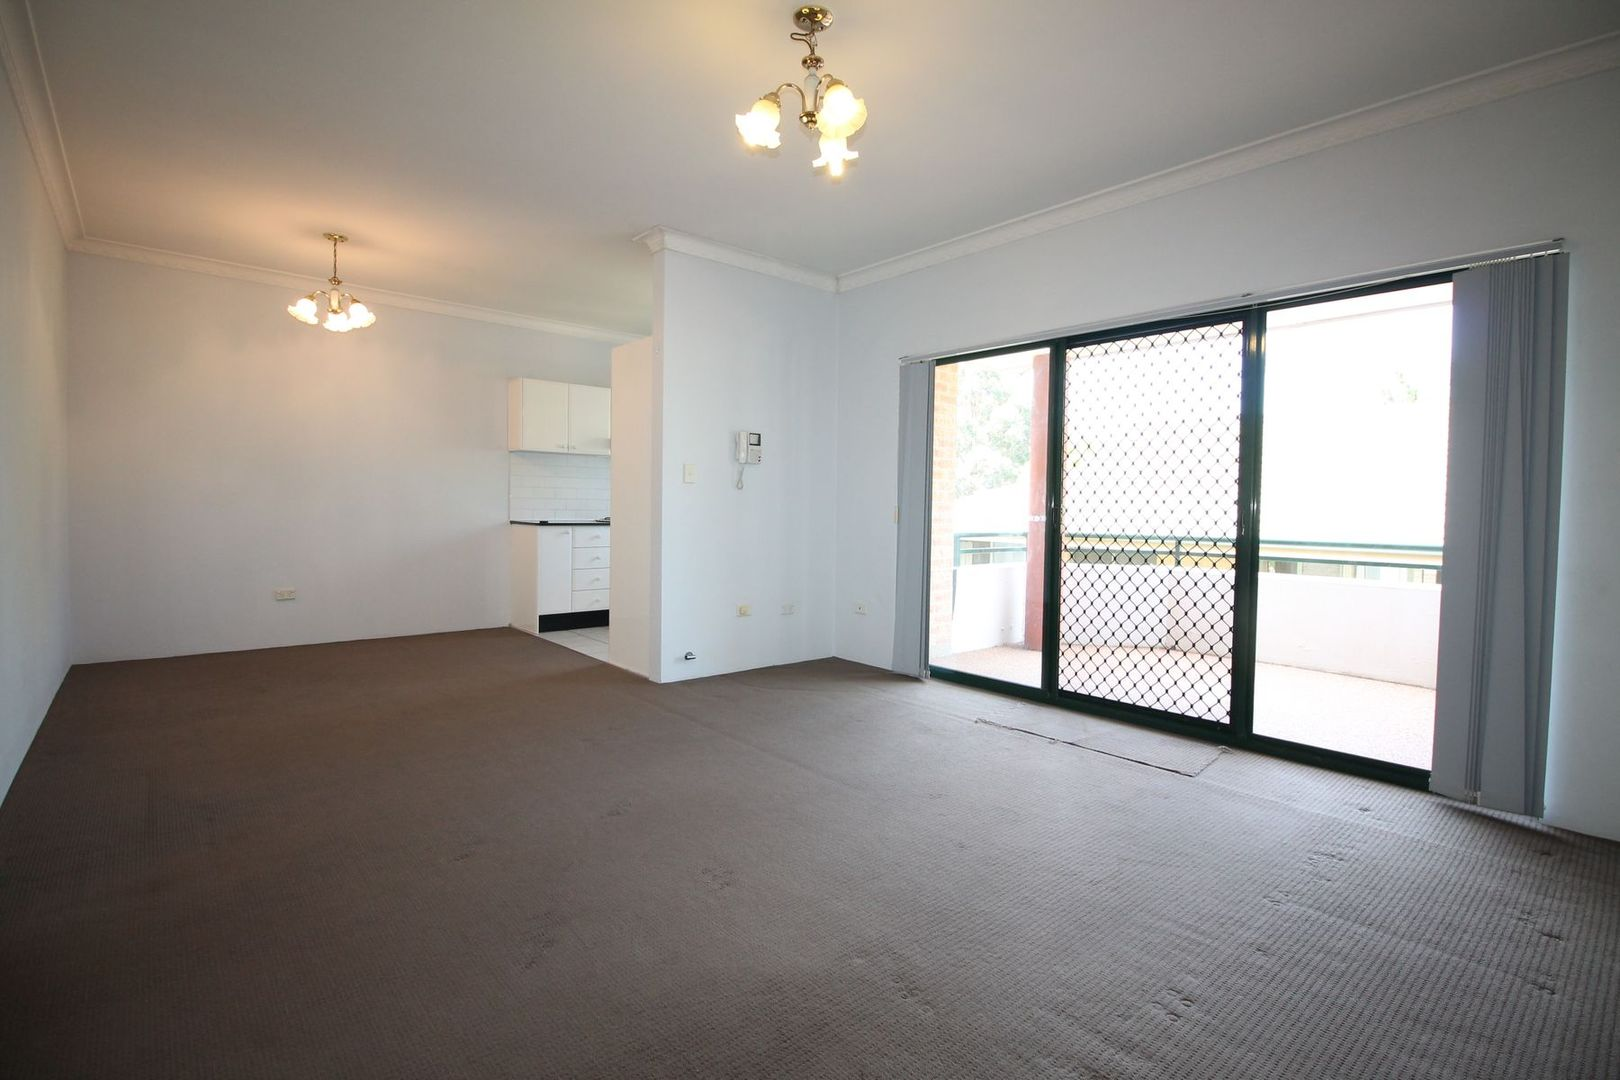 7/64 Weston Street, Harris Park NSW 2150, Image 0